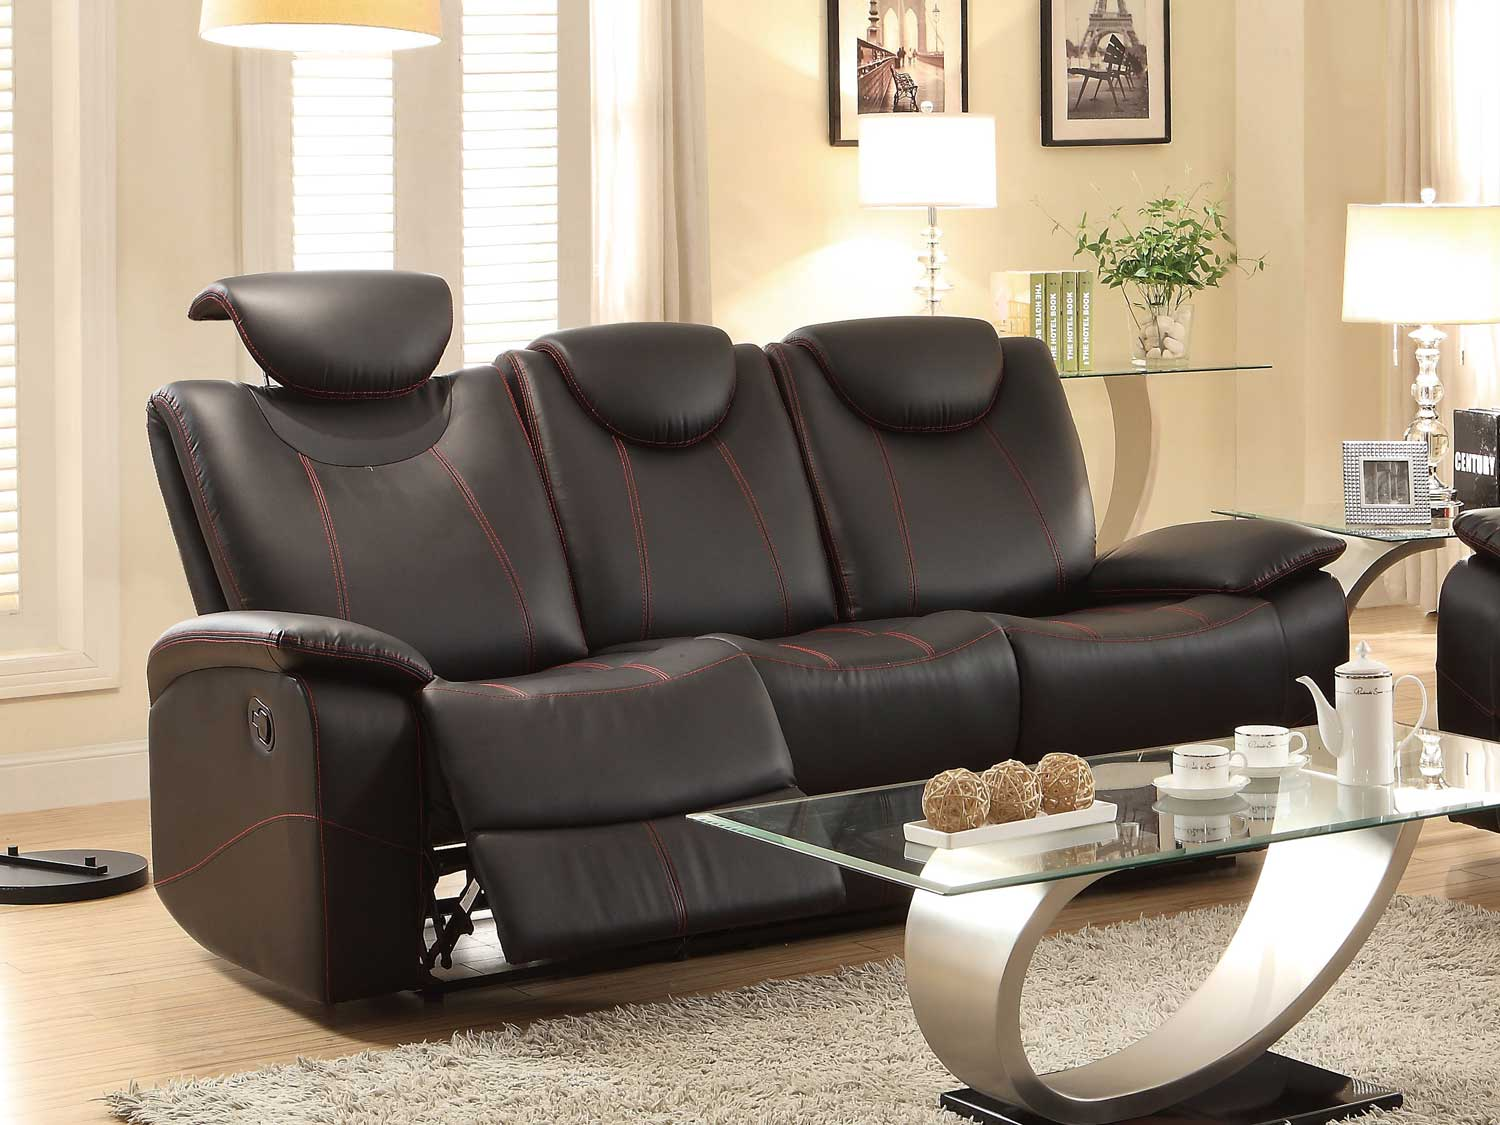 Homelegance Talbot Double Reclining Sofa Black Bonded Leather 8524bk 3 At